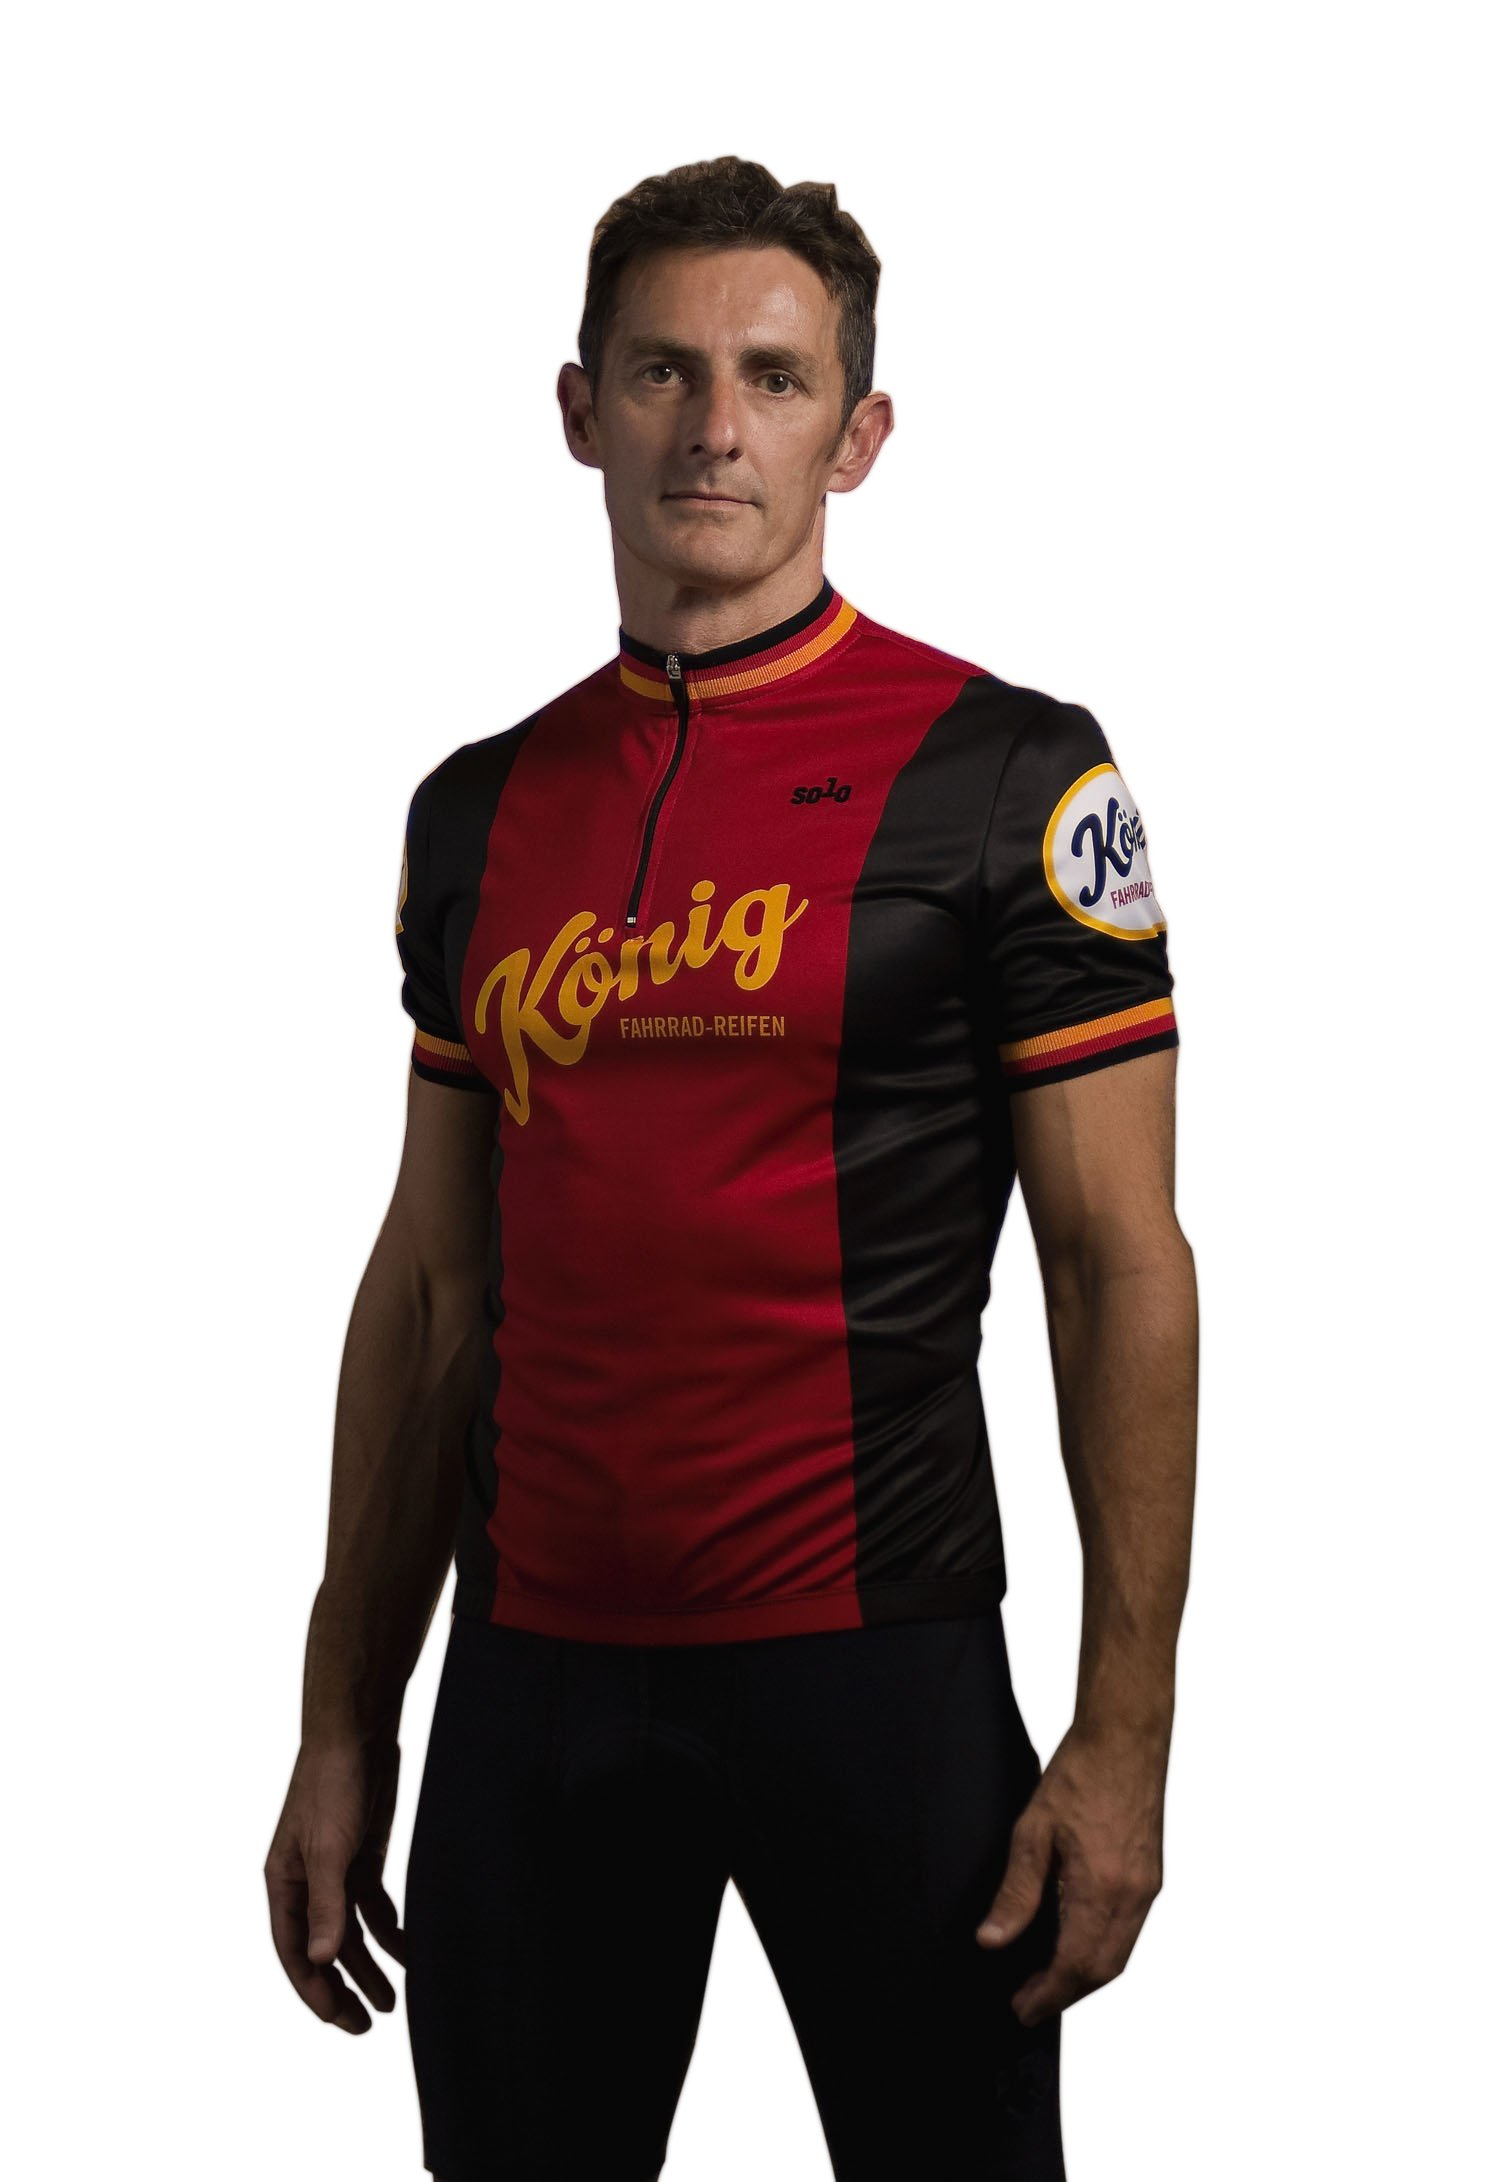 Solo Cycle Clothing Konig Classique Cycling Jersey